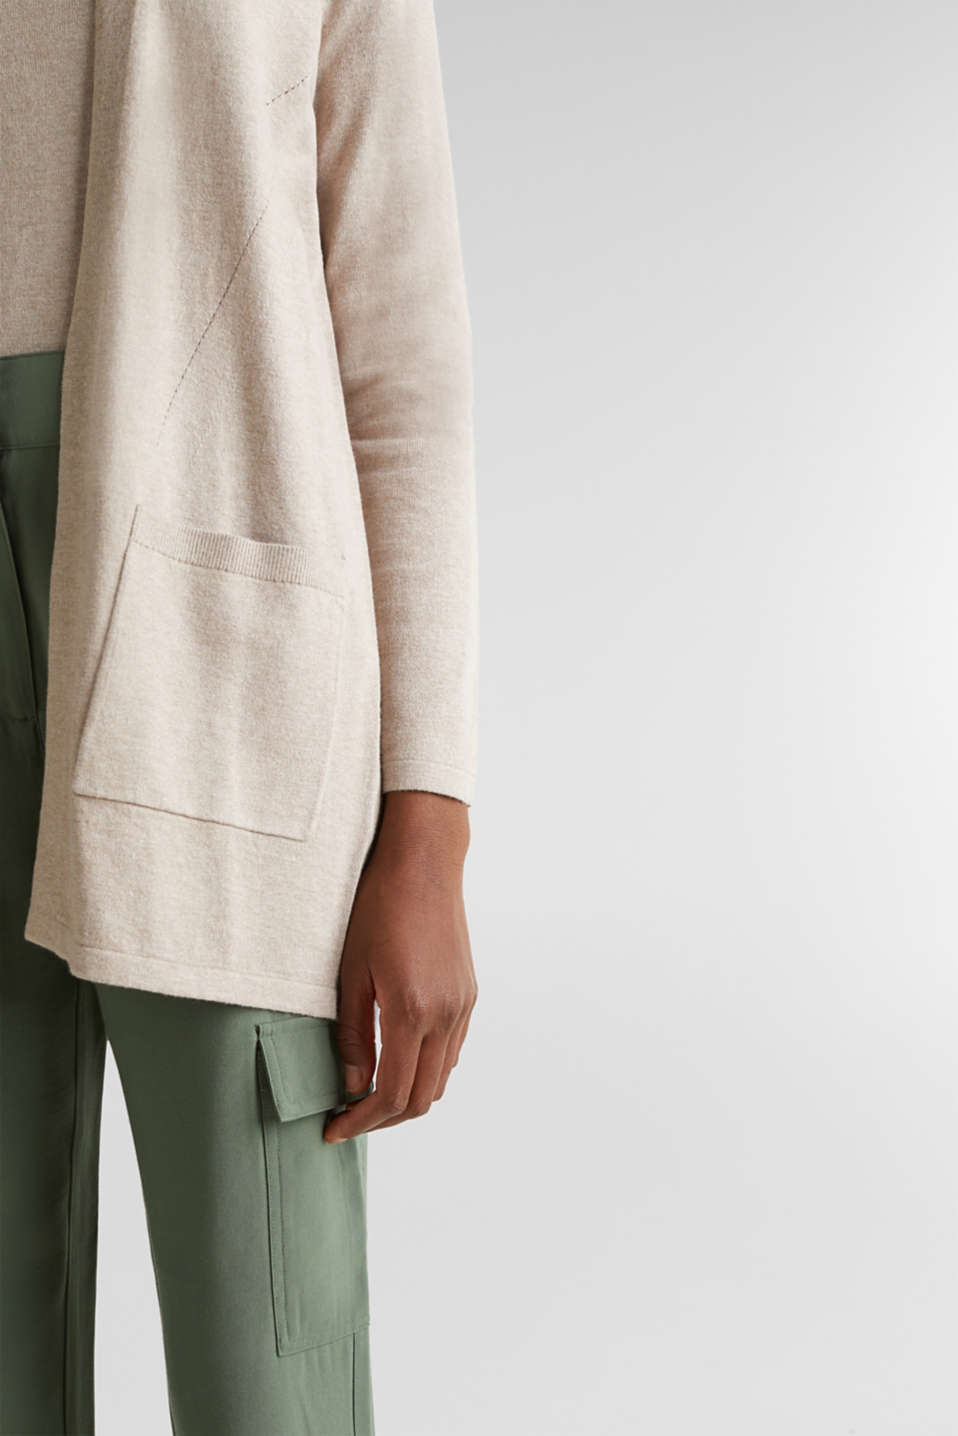 With linen: open cardigan with open-work pattern details, BEIGE 5, detail image number 4